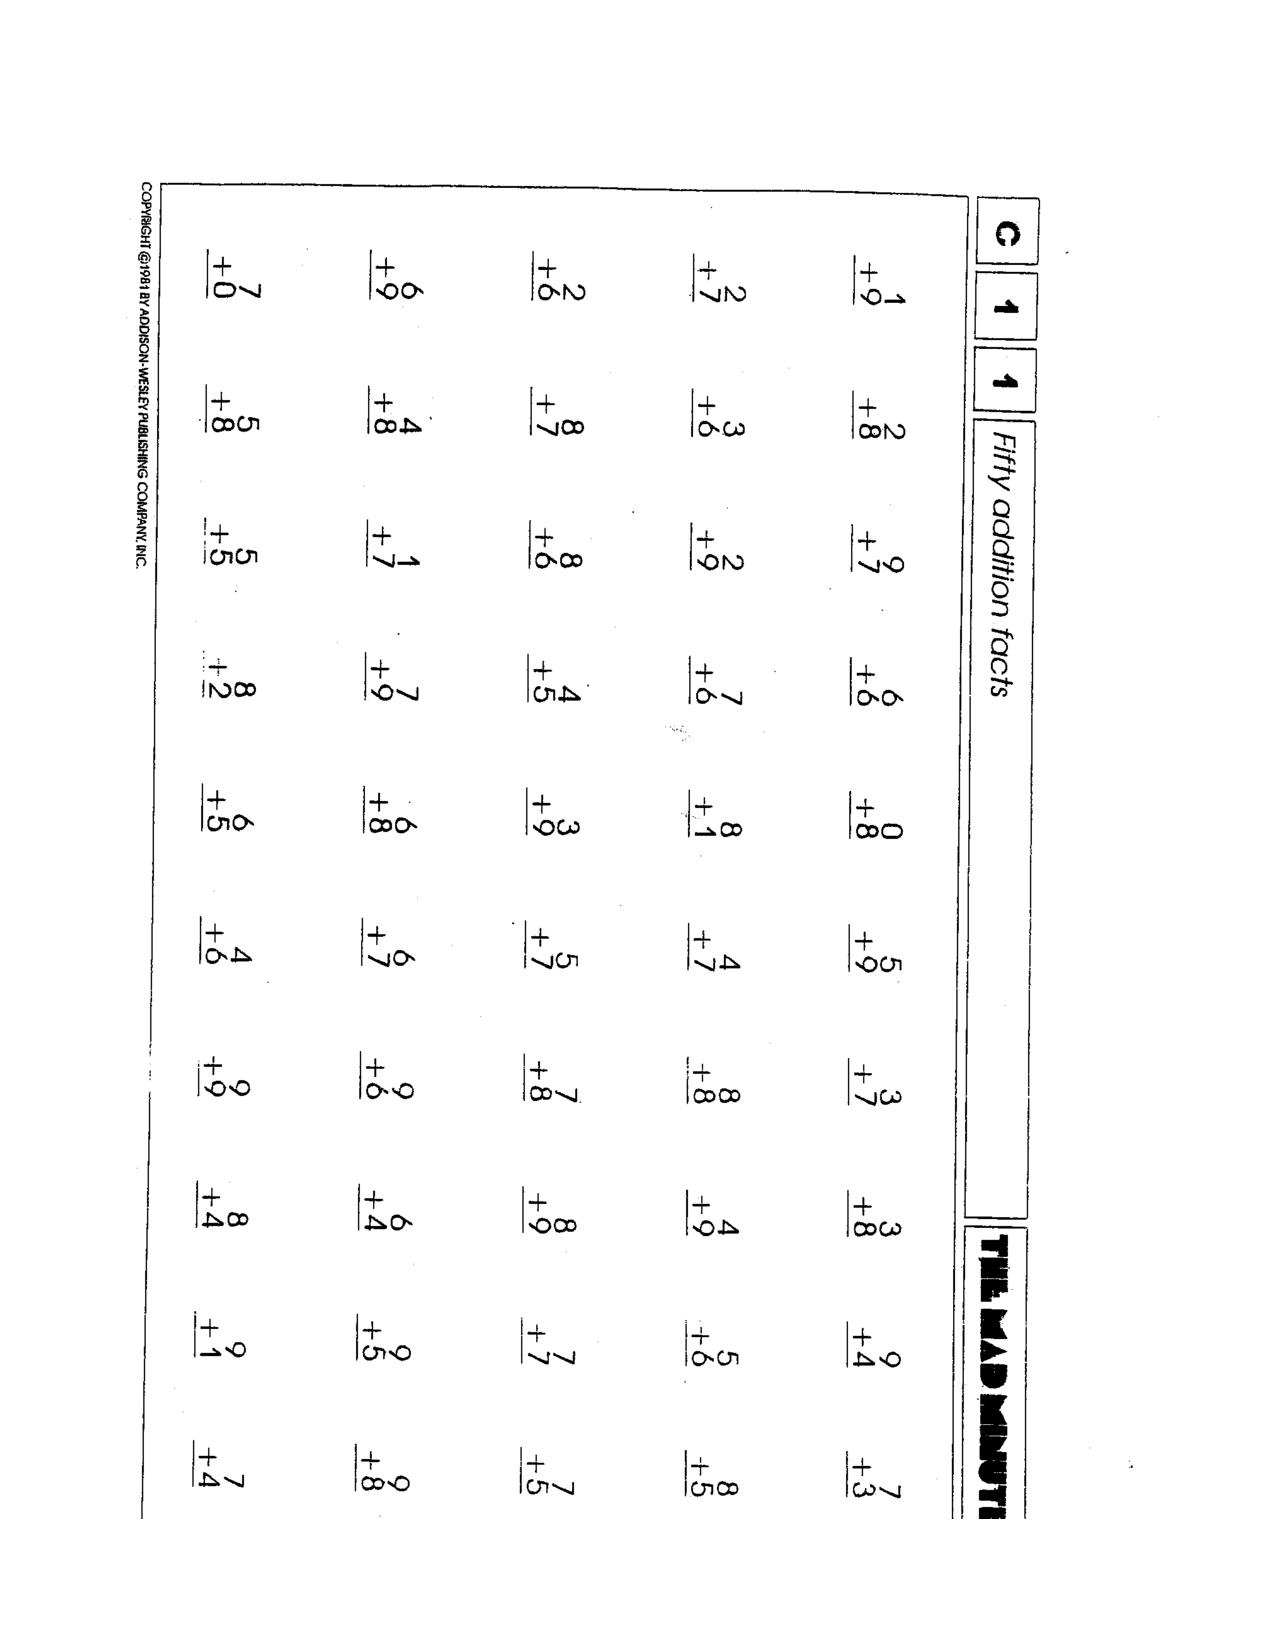 money practice worksheets – Money Division Worksheets